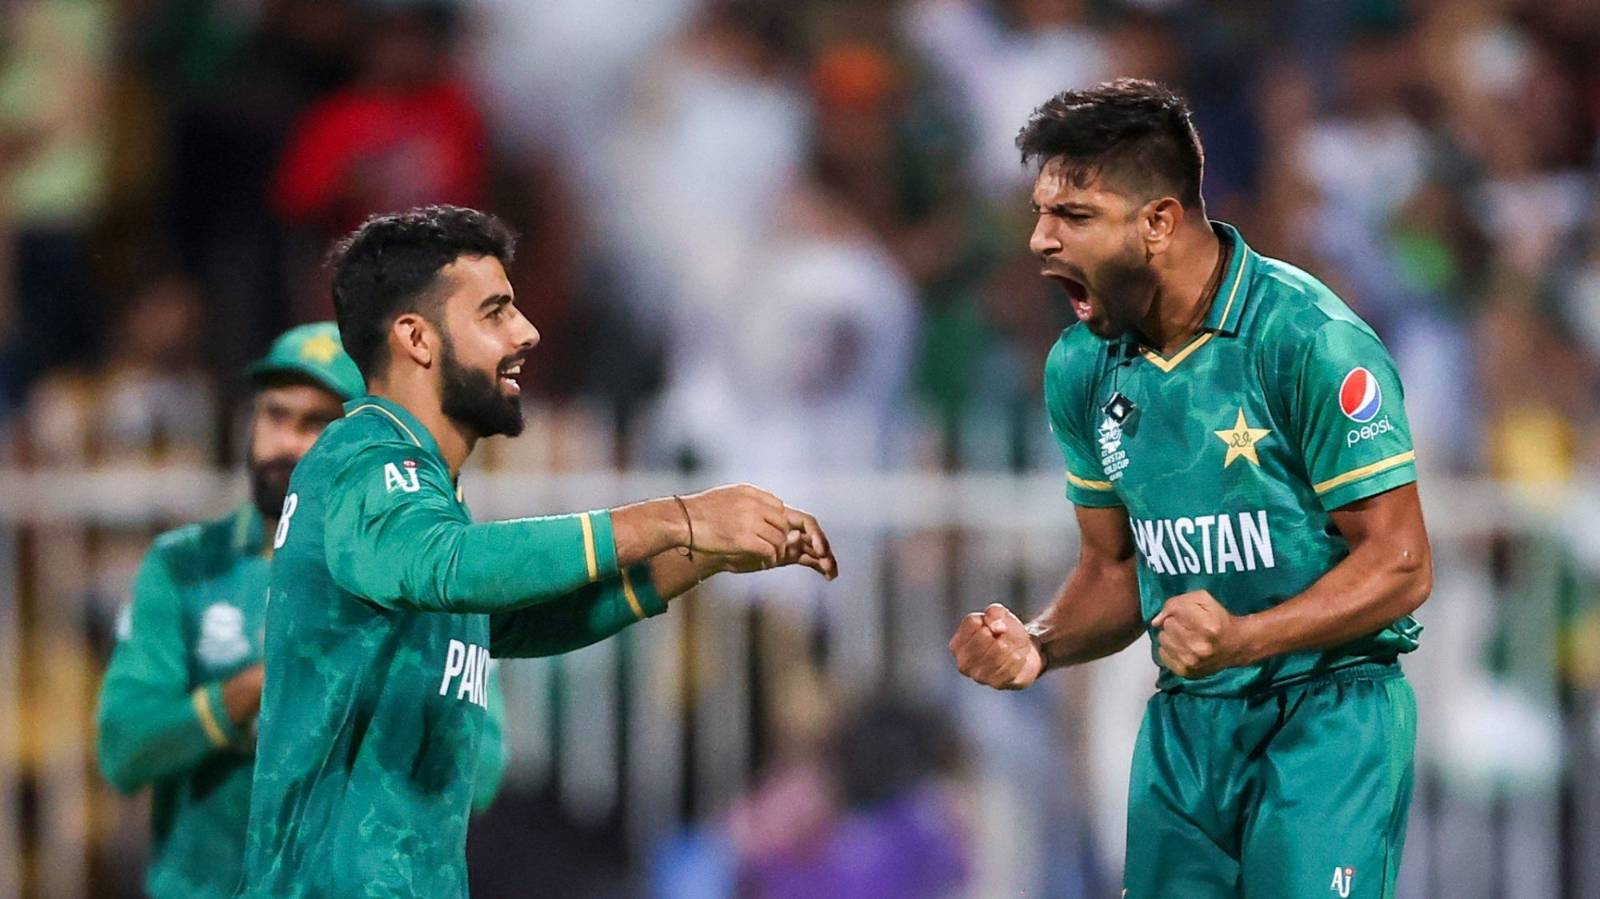 Black Caps lose T20 World Cup opener to Pakistan